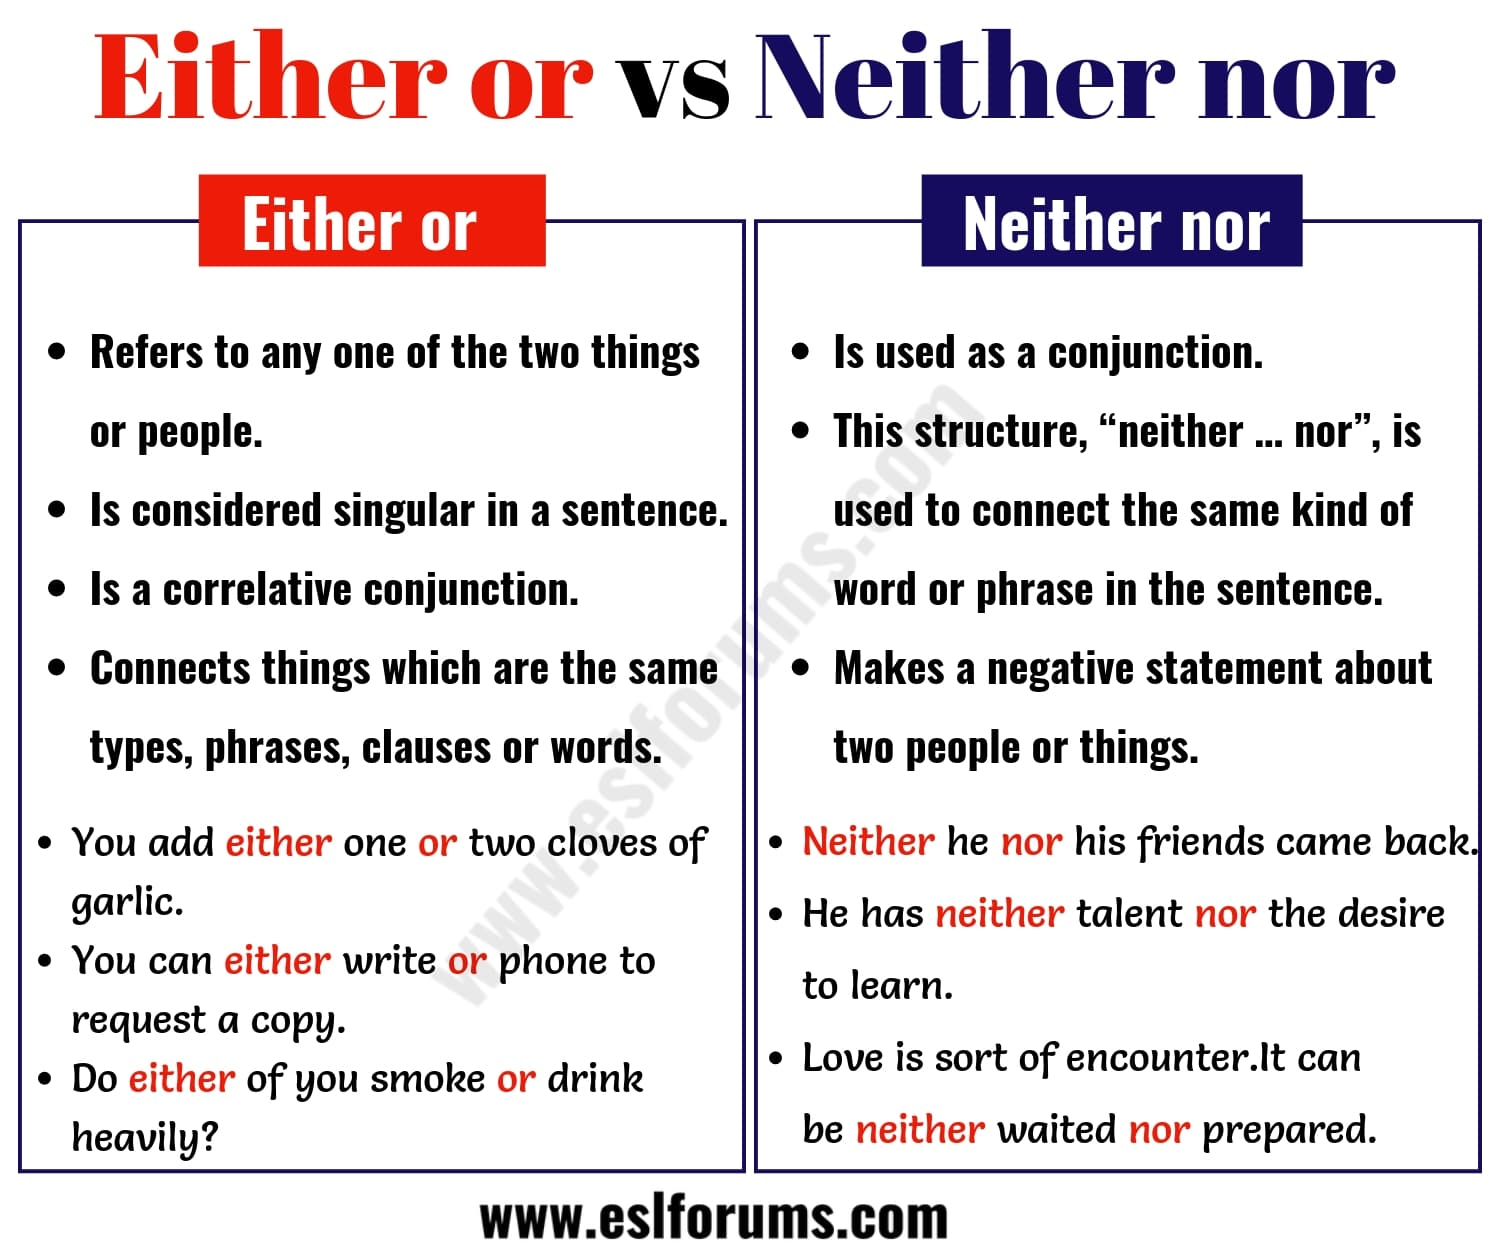 Either or vs Neither nor